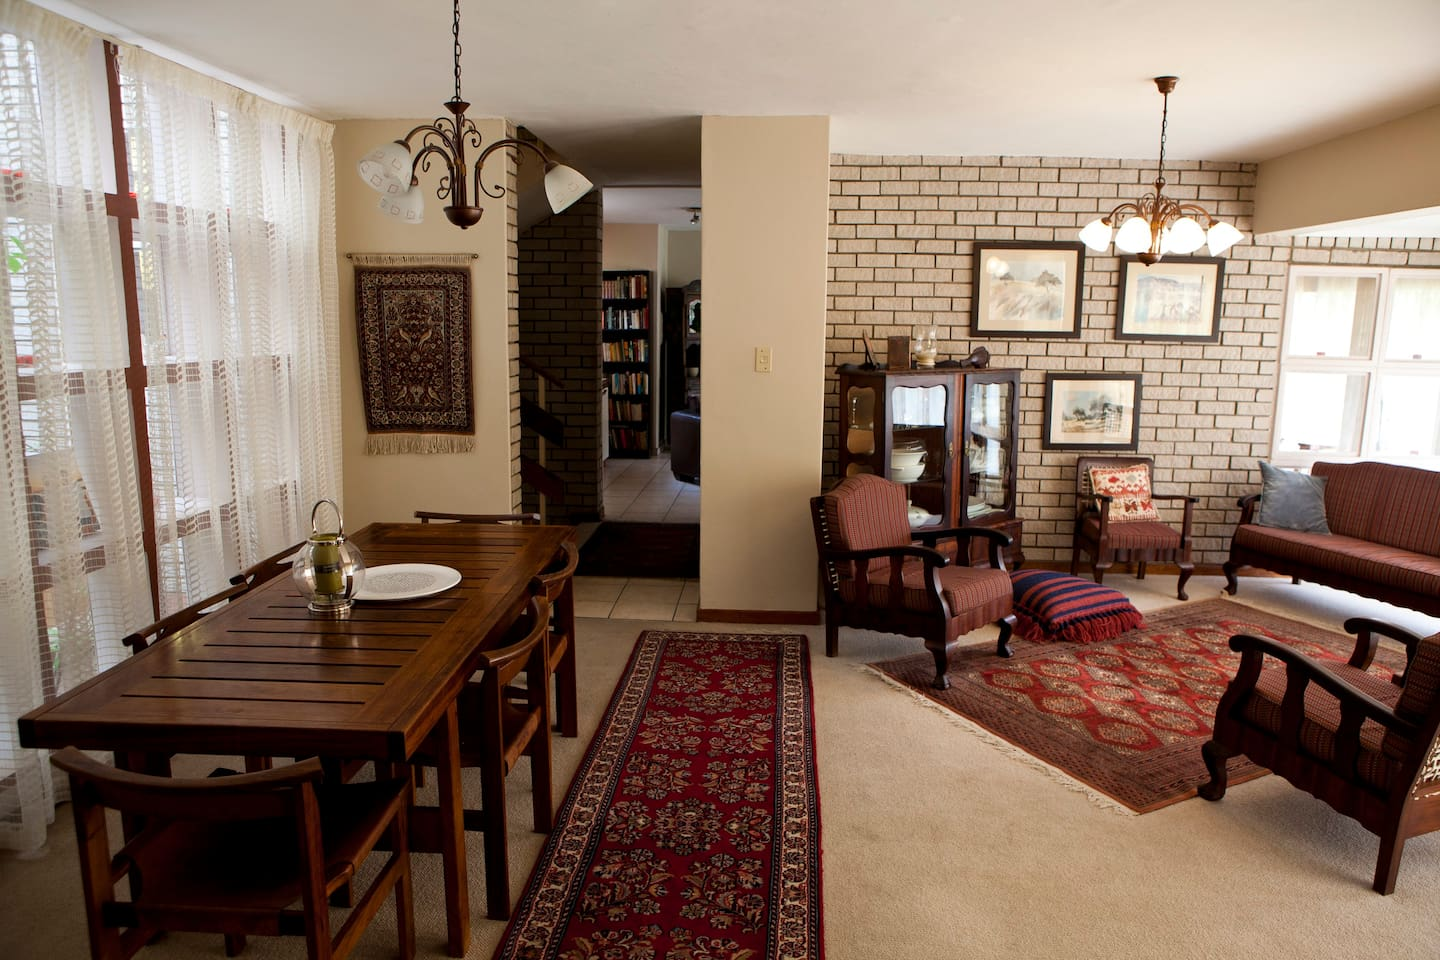 Living and dining room area